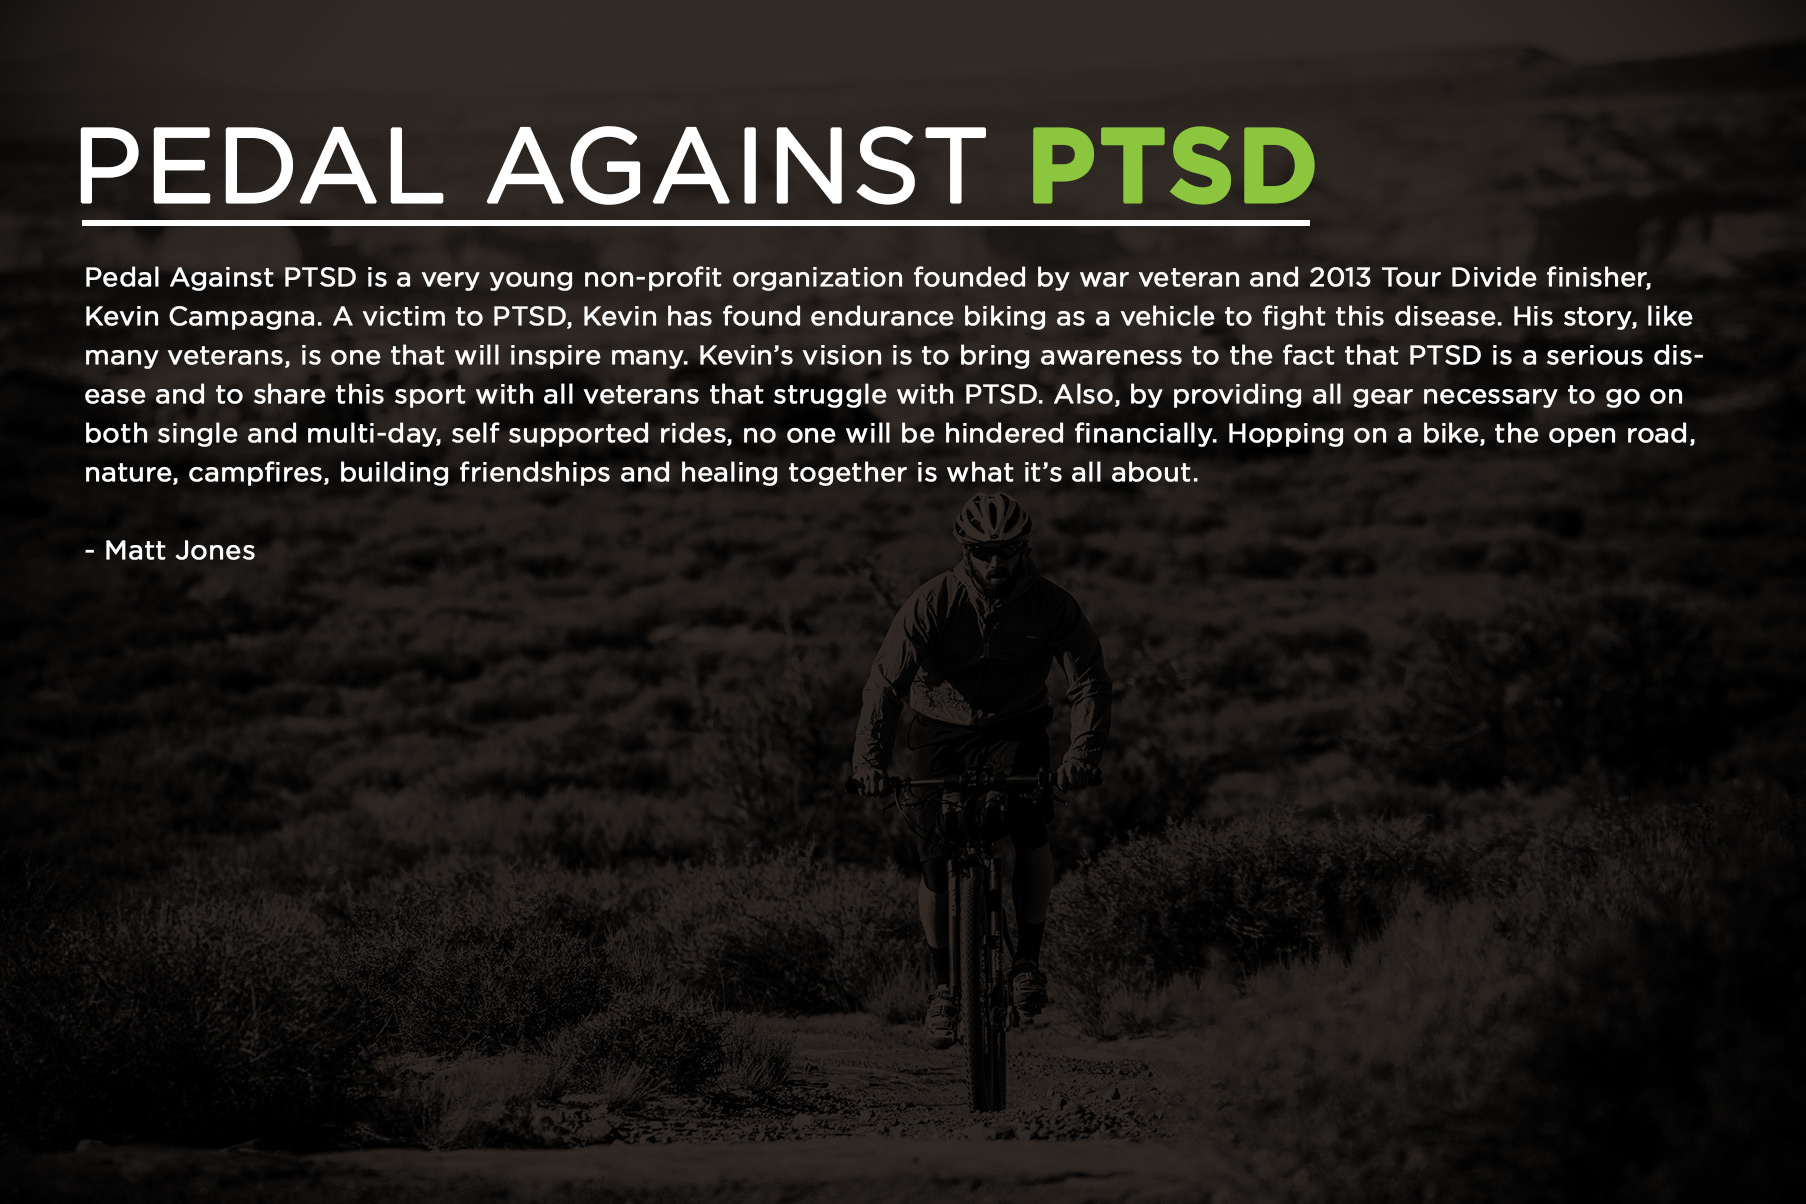 pedal-against-ptsd-intro.jpg